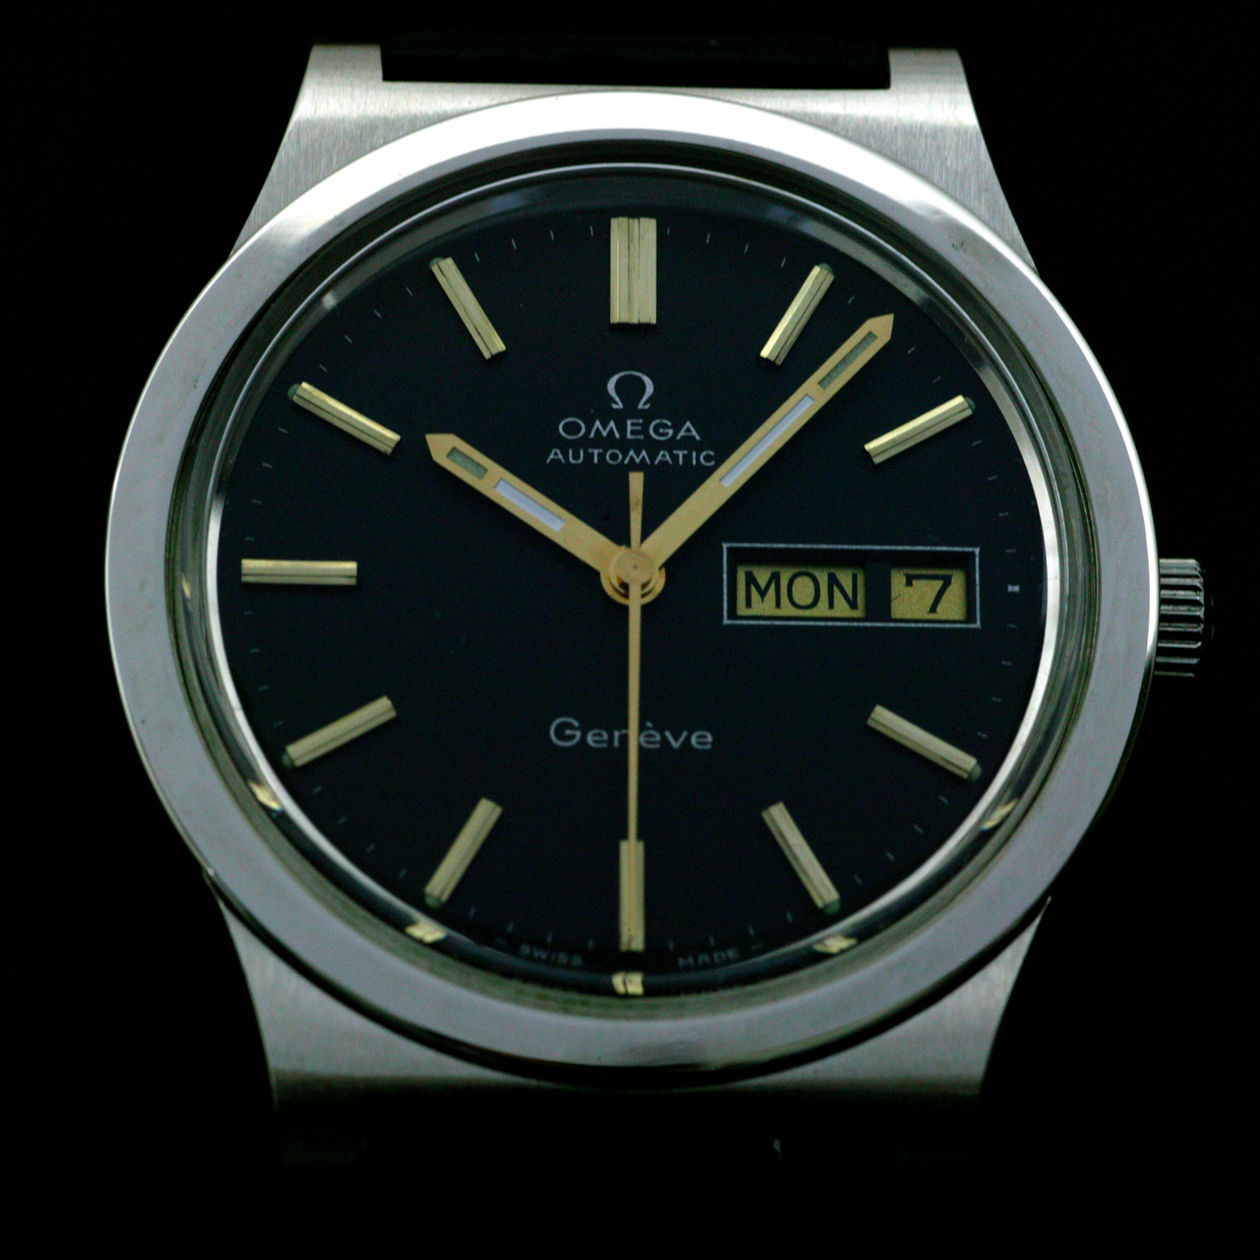 efdc109832a9 Omega Watch Price Guide